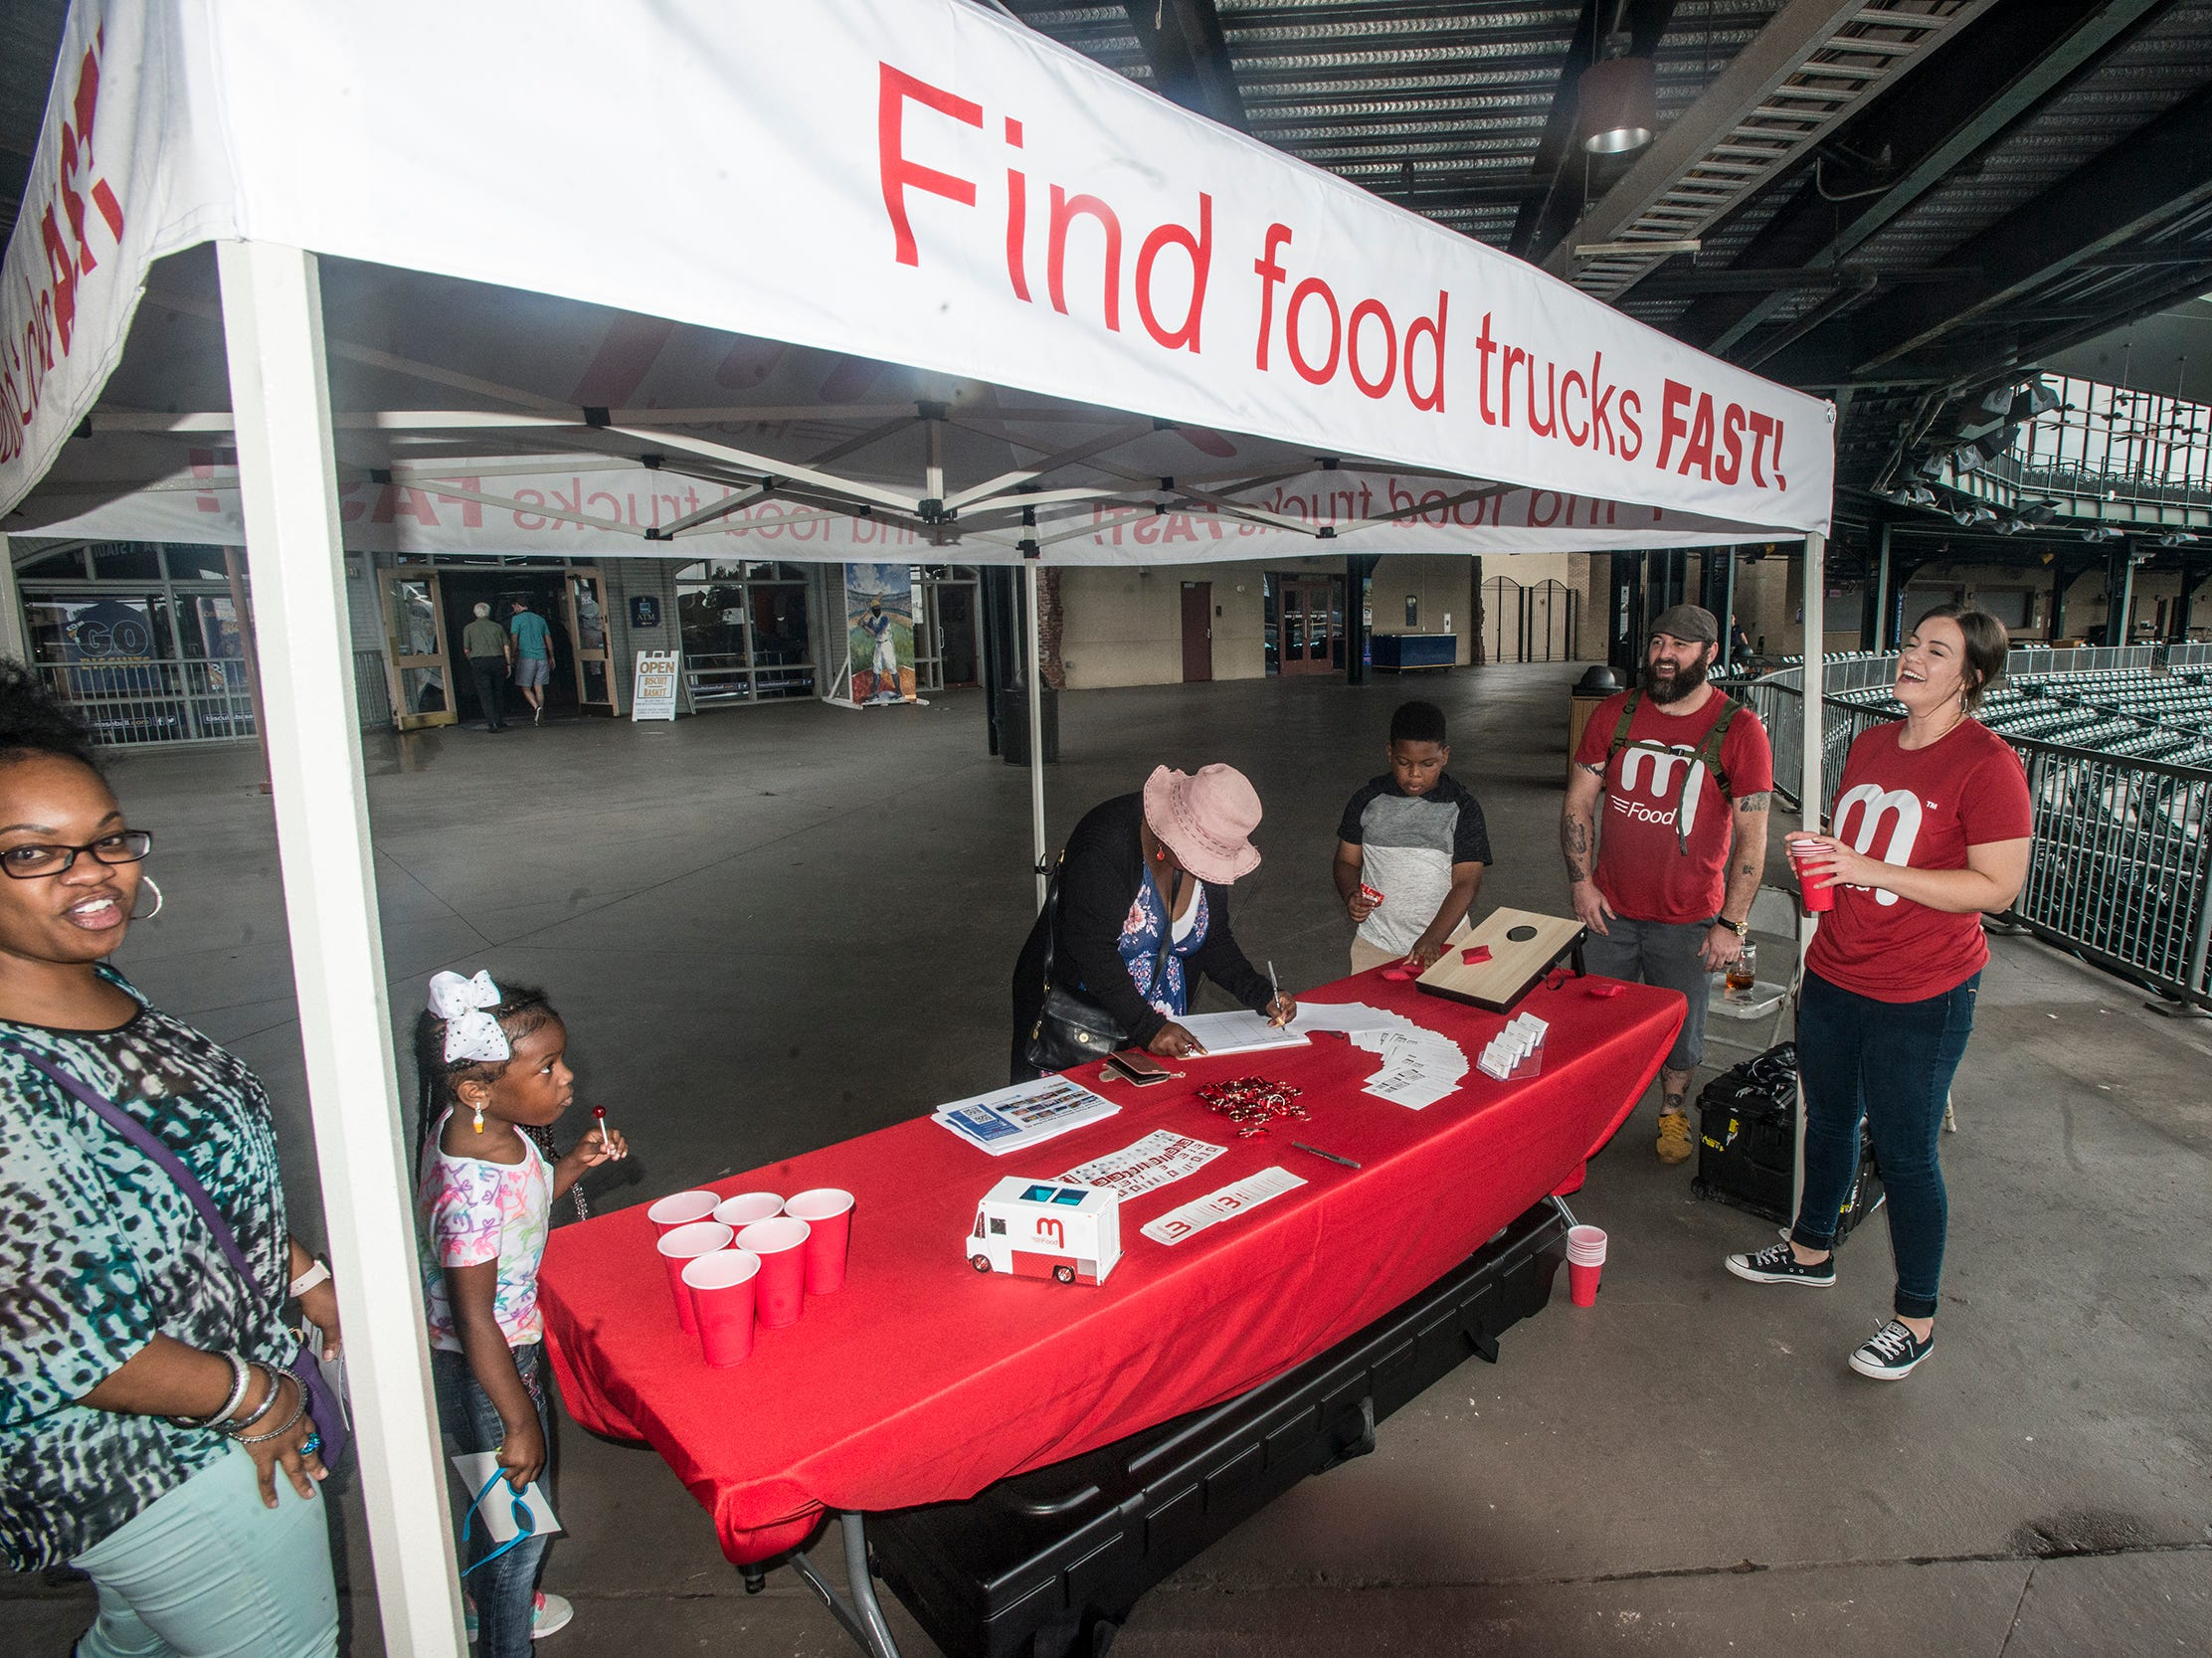 Guests play games at the mFood tent. Food Truck Mash-Up returned to Riverwalk Stadium on Saturday, Oct. 20, 2018, bringing a variety of food trucks, music and games for guests to enjoy.